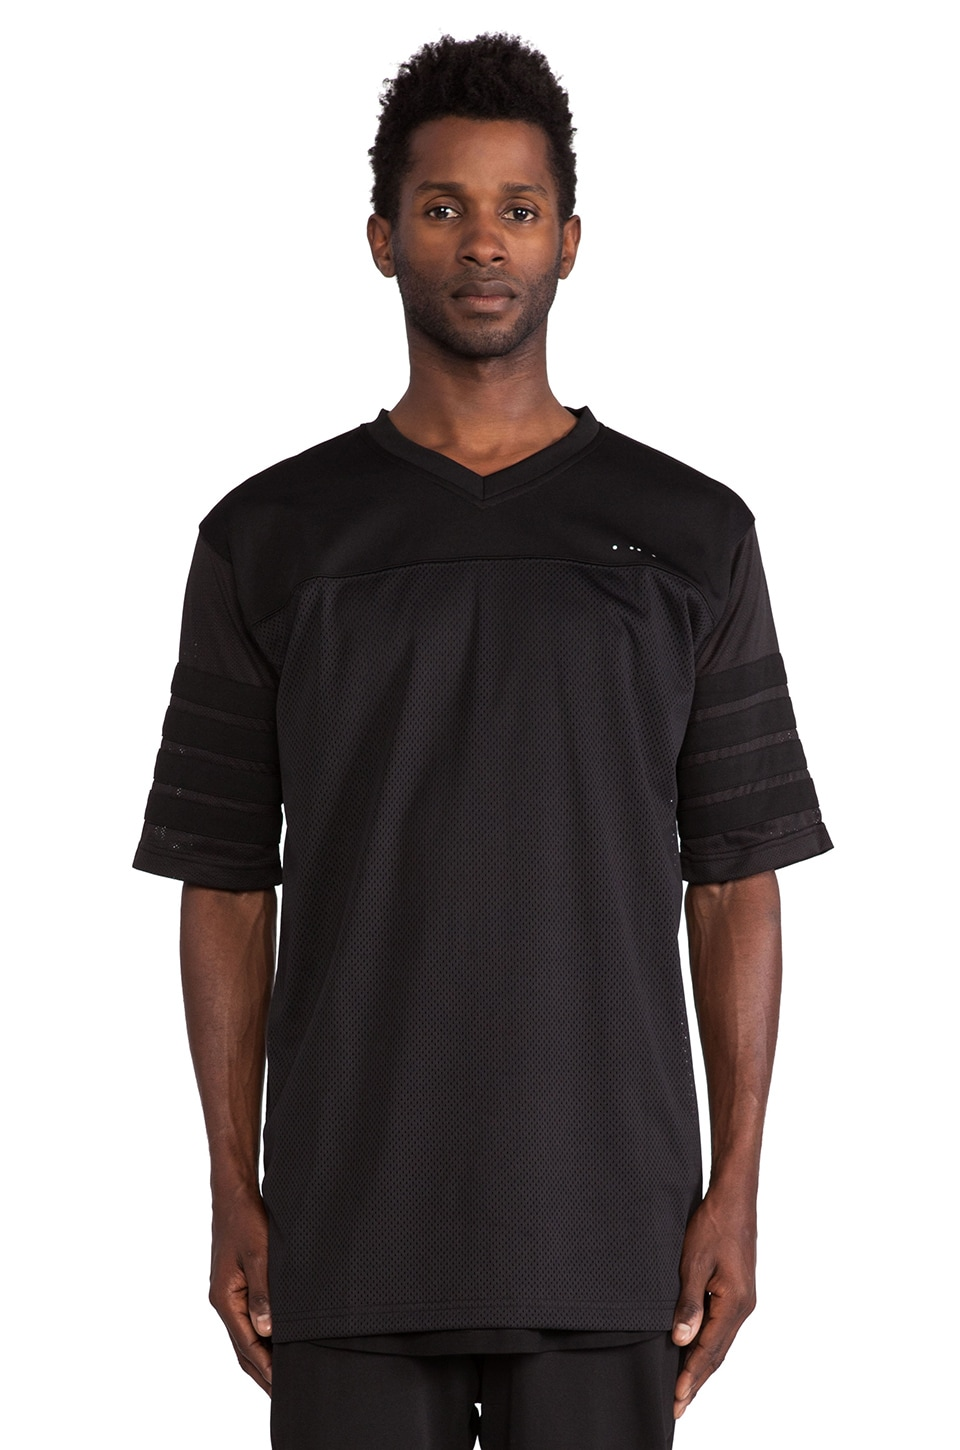 Publish MONO Aikman Jersey Tee in Black